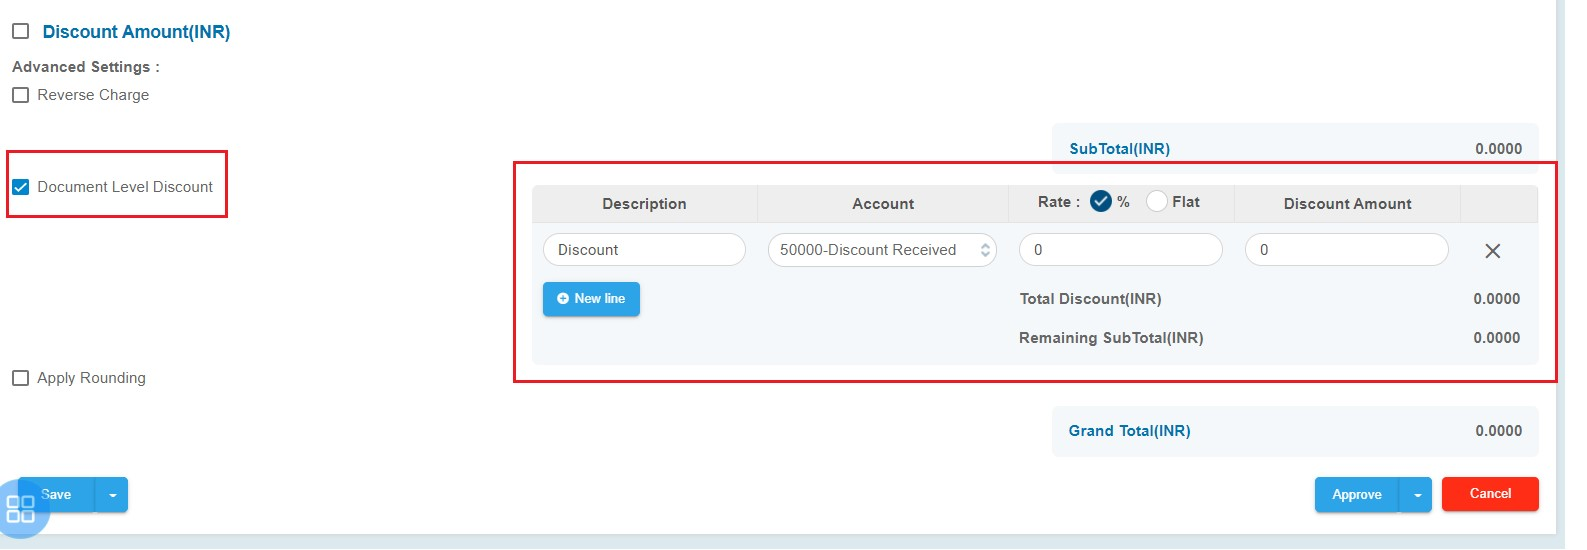 document-level-discount-feature